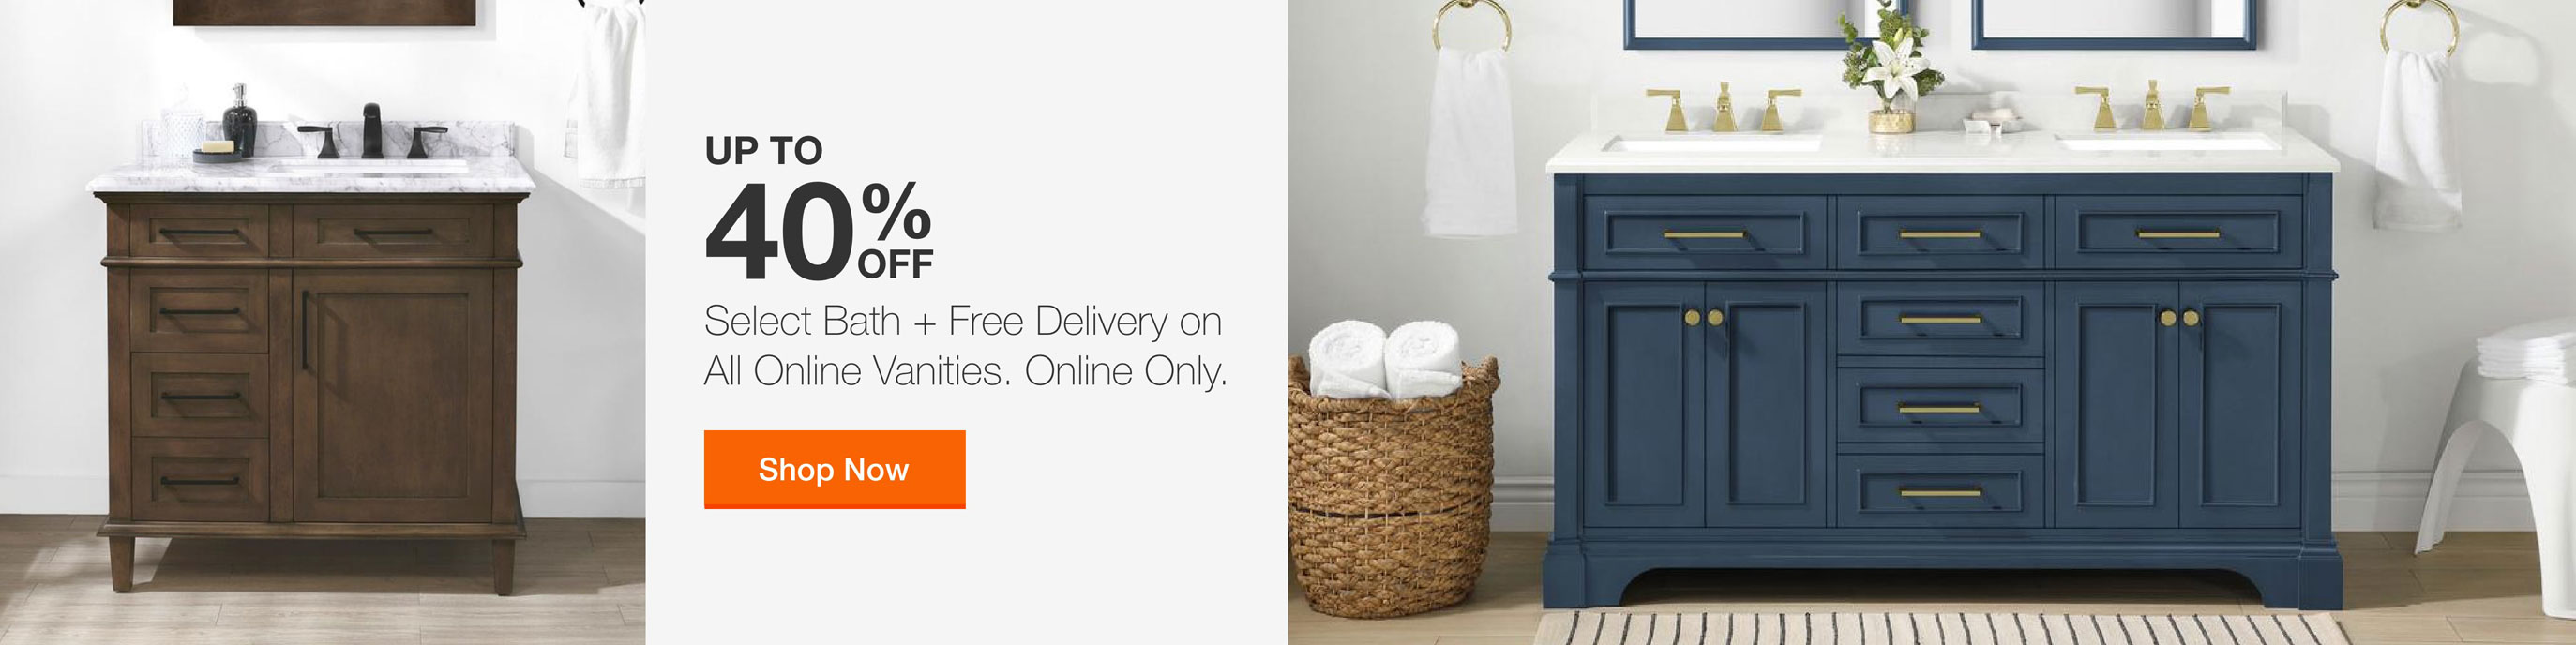 Select Bath + Free Delivery on All Online Vanities. Online Only.